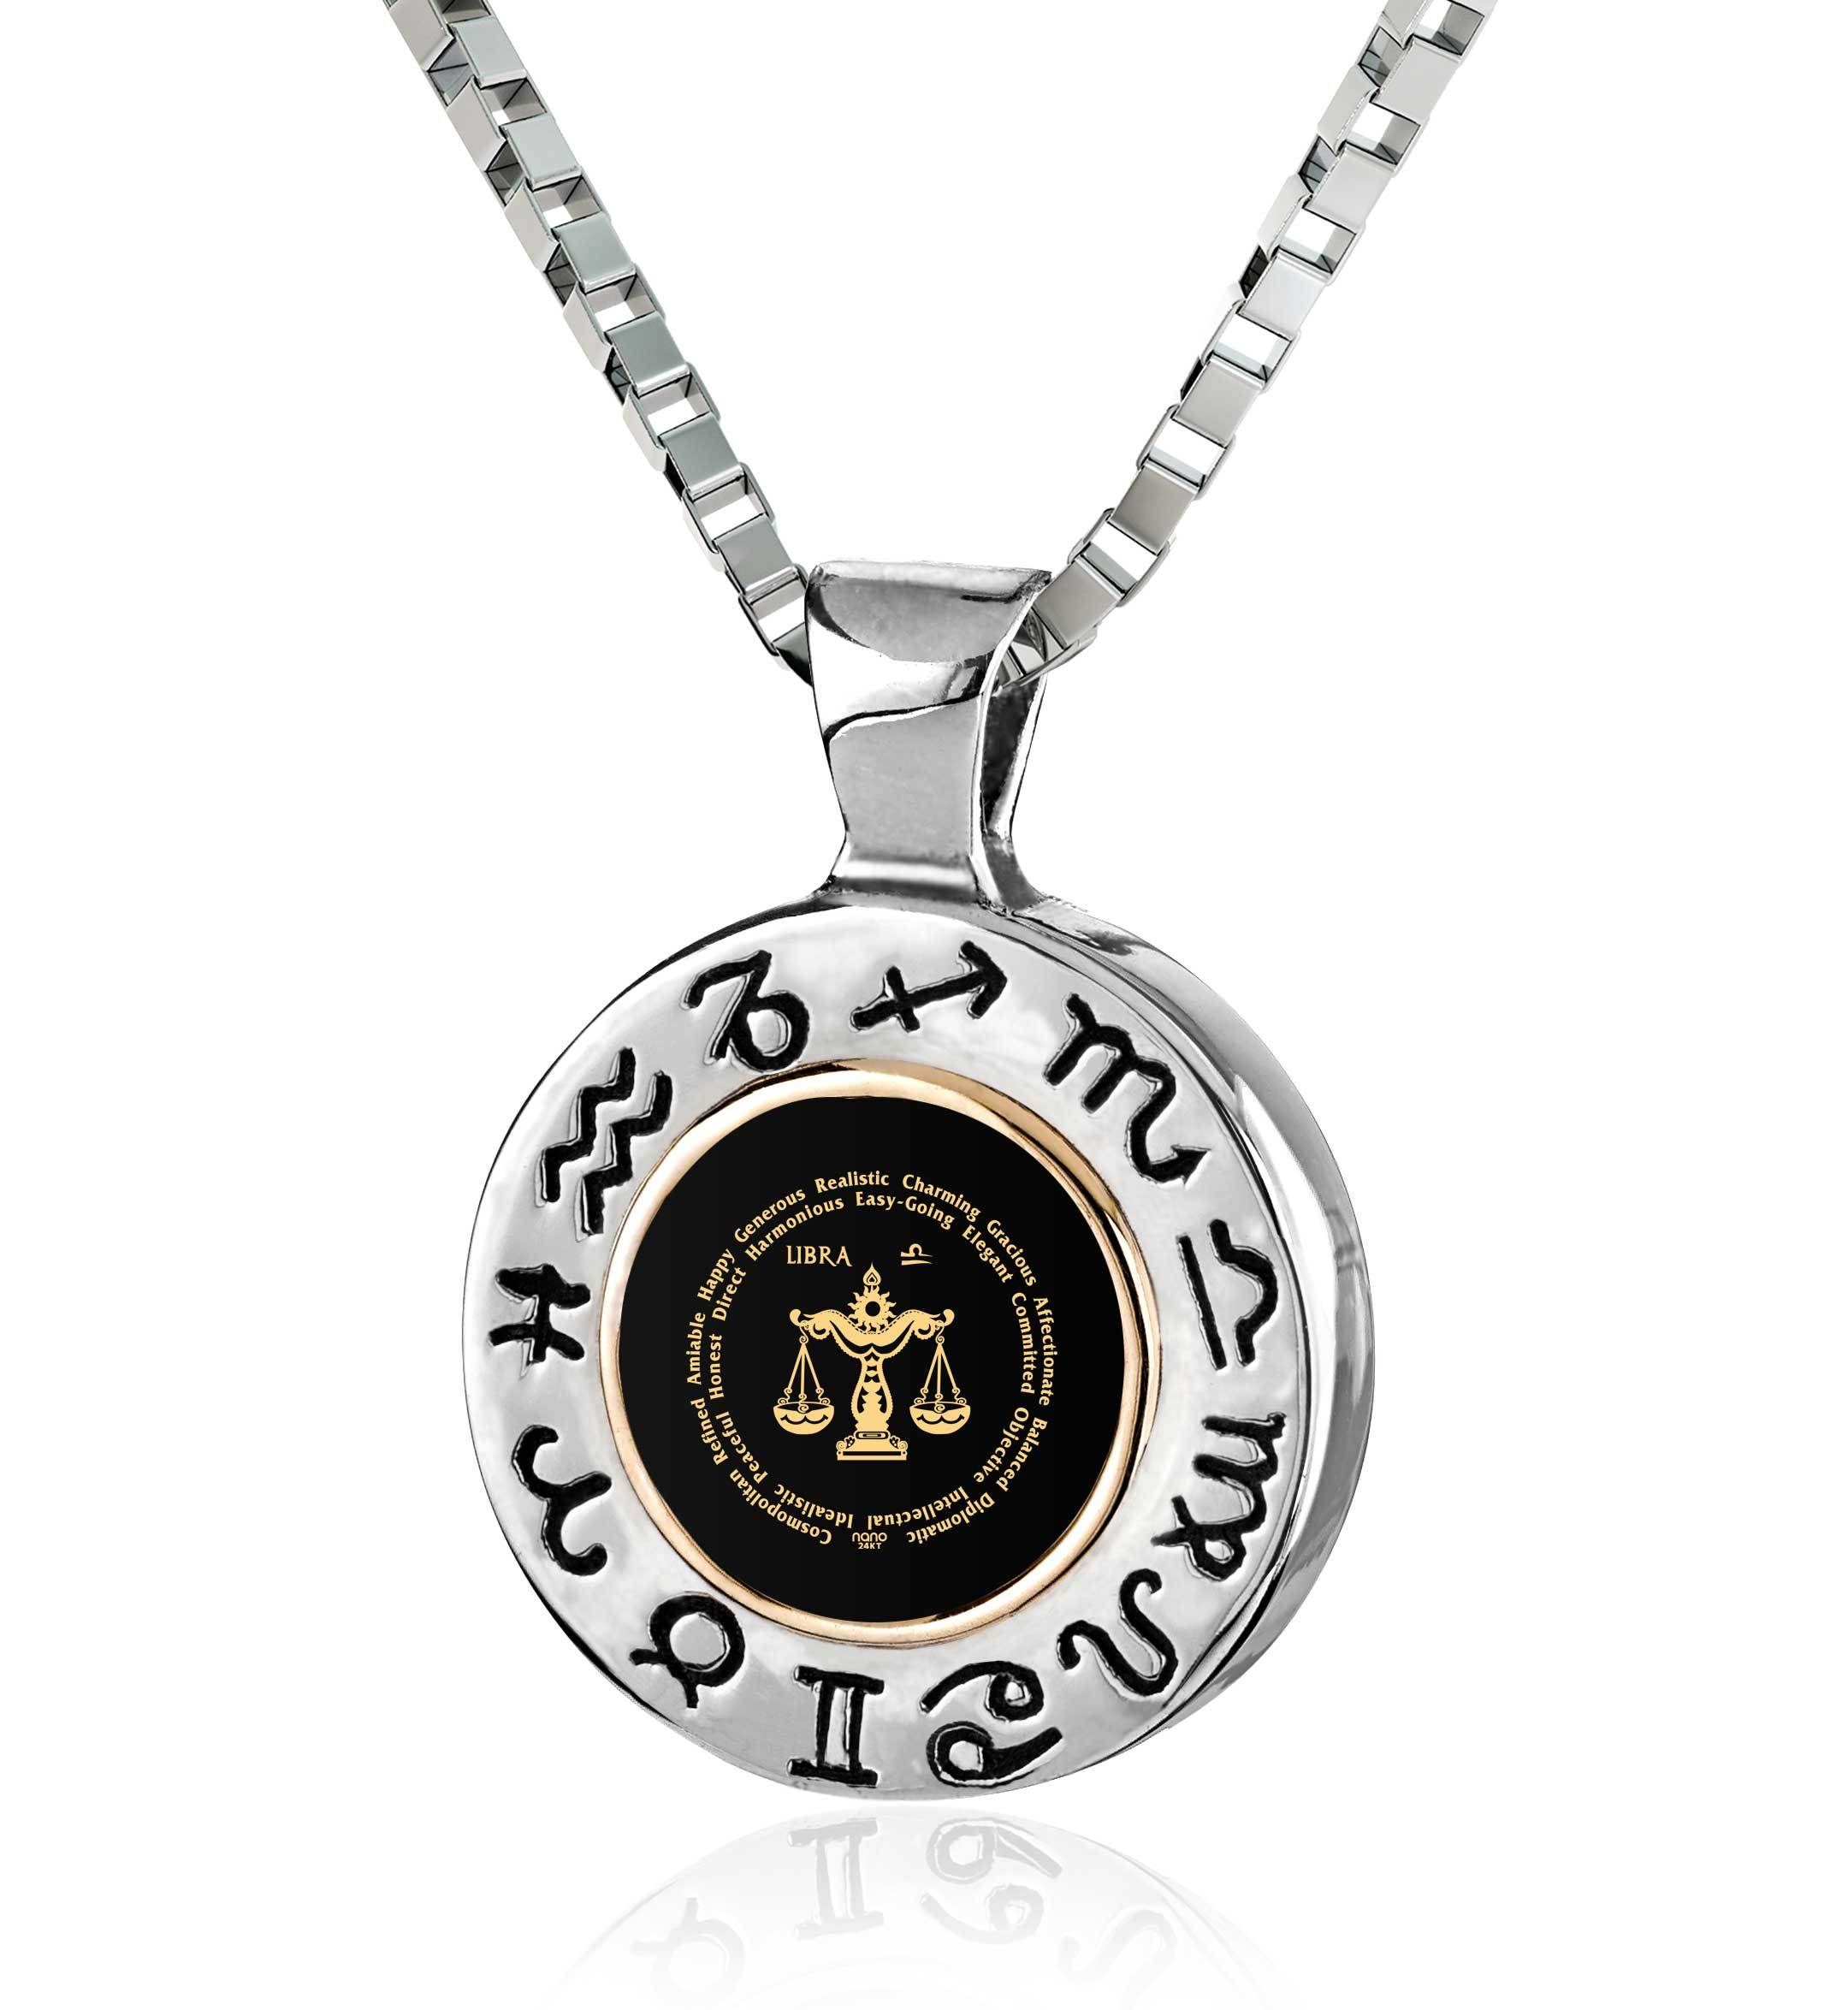 Man Gifts For Christmas Libra Male Characteristic Silver Jewelry Valentines Day Presents Him